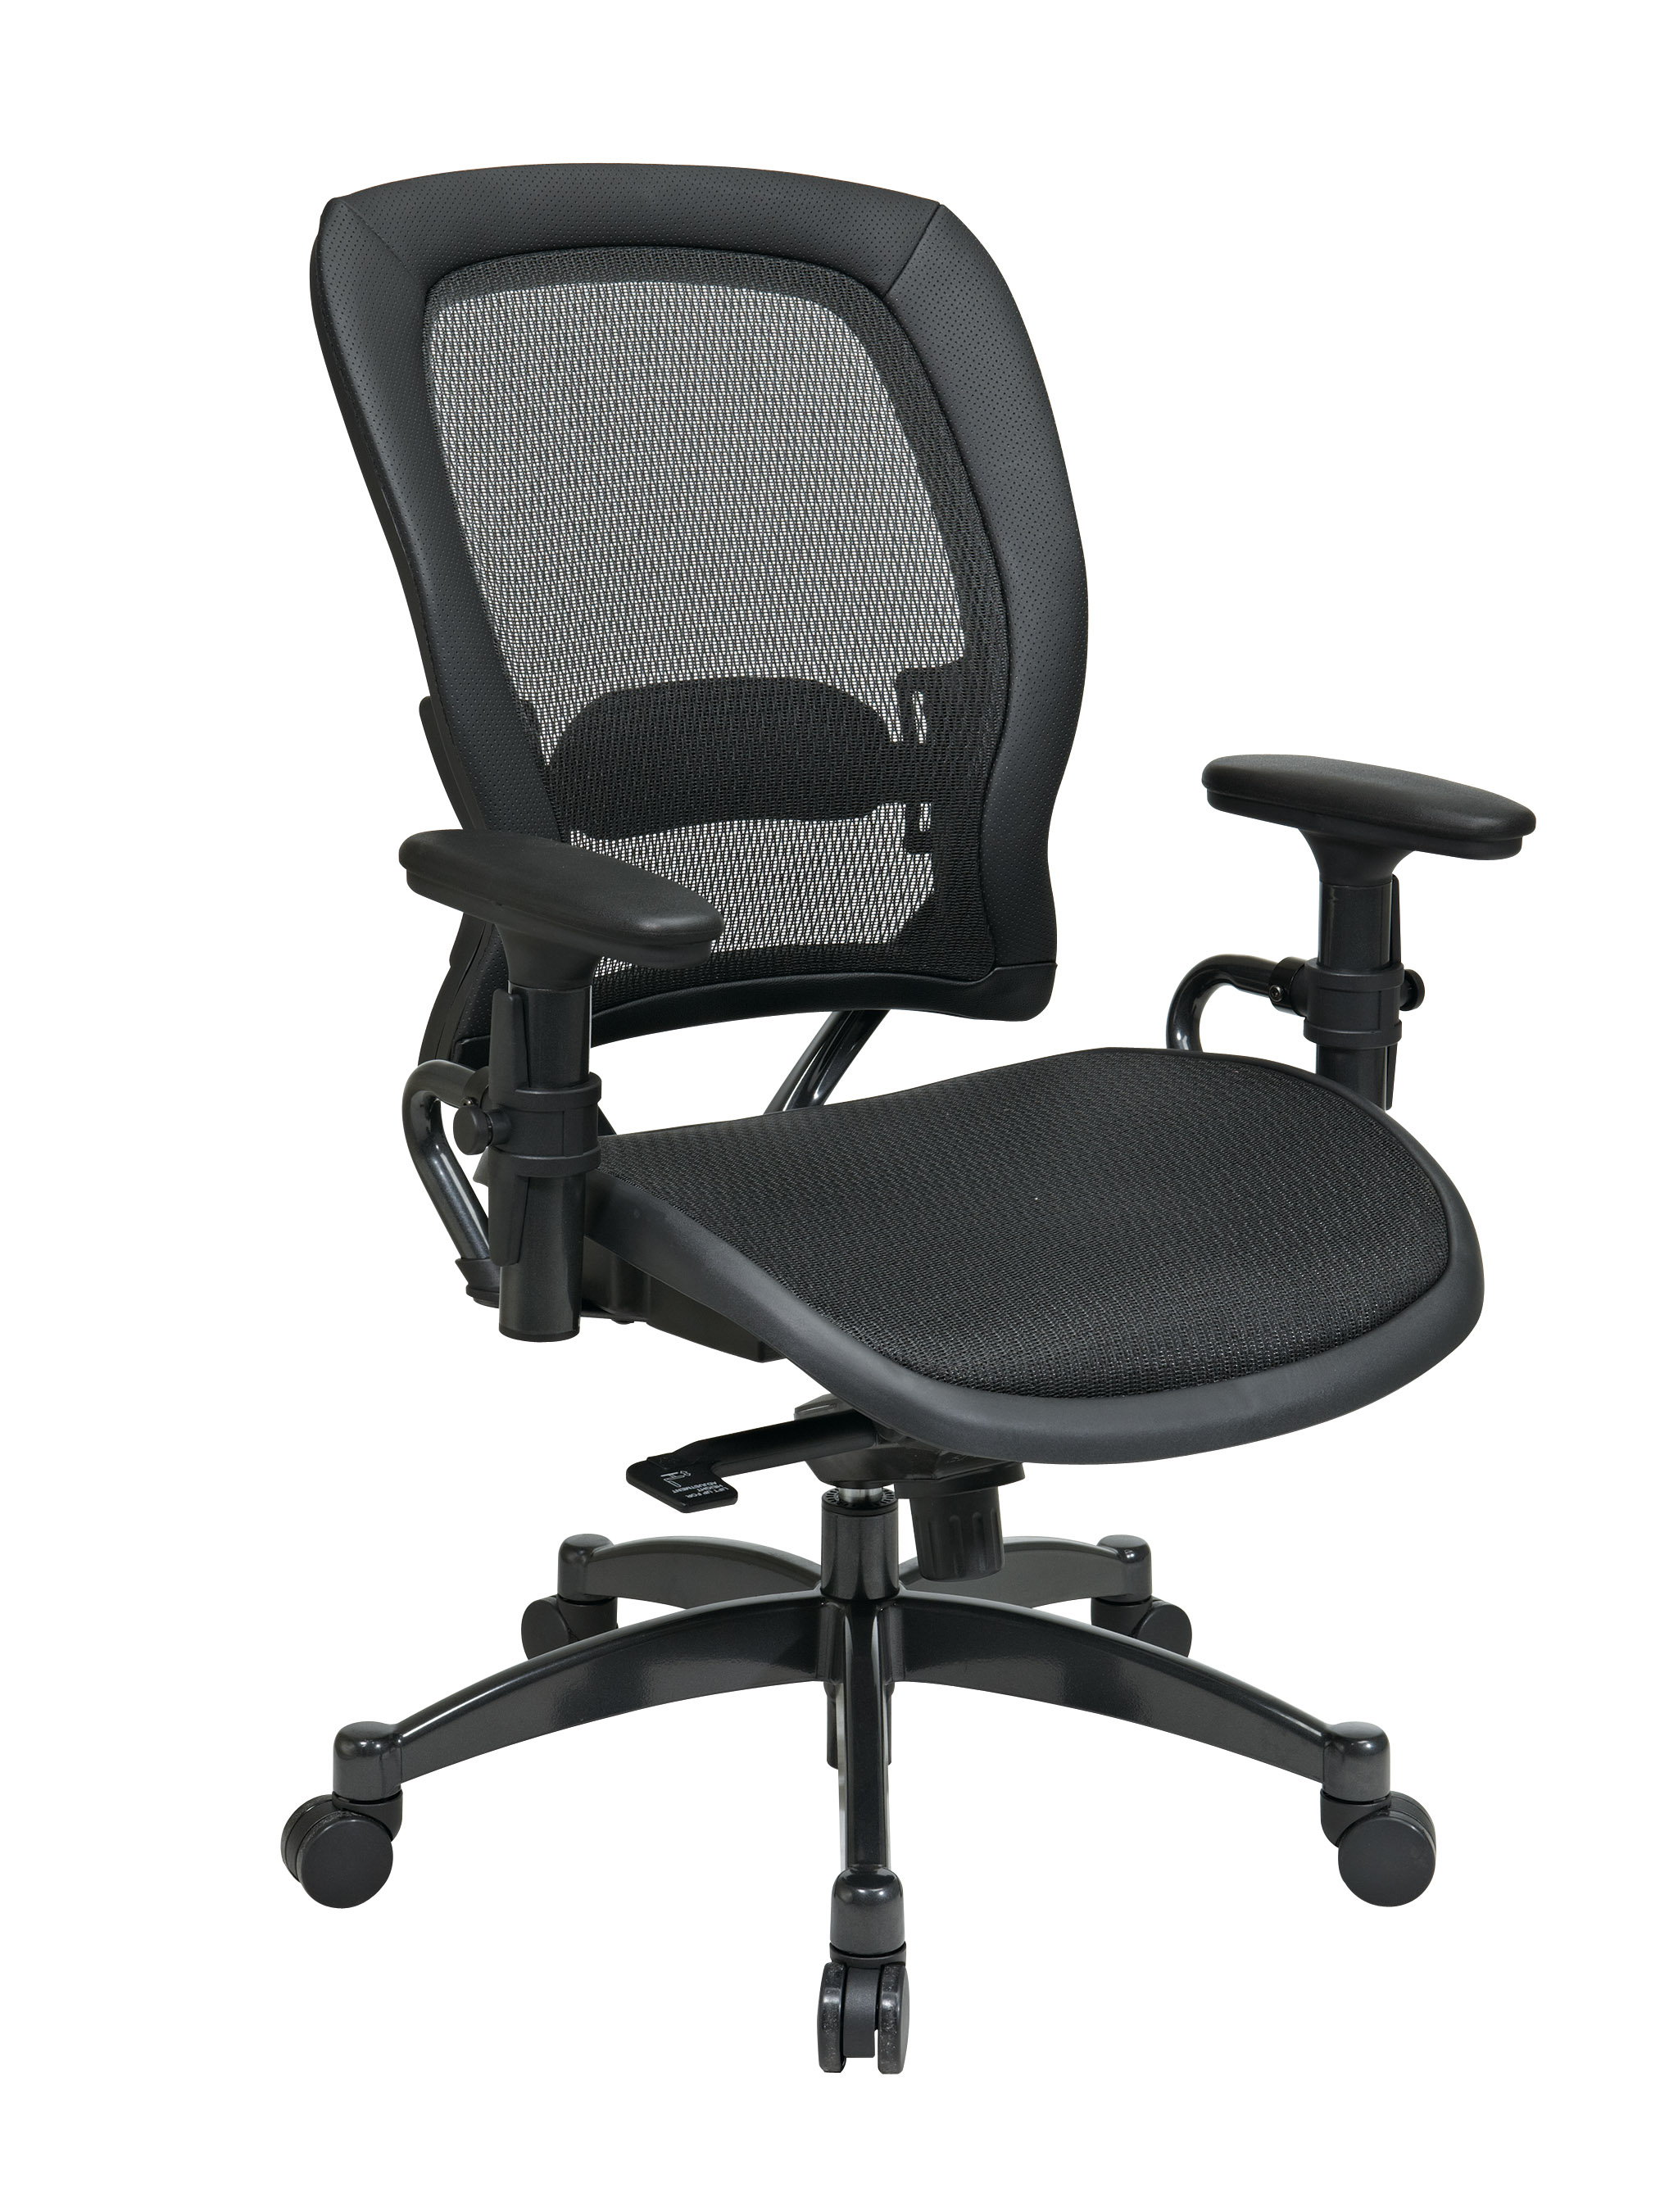 Black Breathable Mesh Chair Front - Professional Black Breathable Mesh Chair